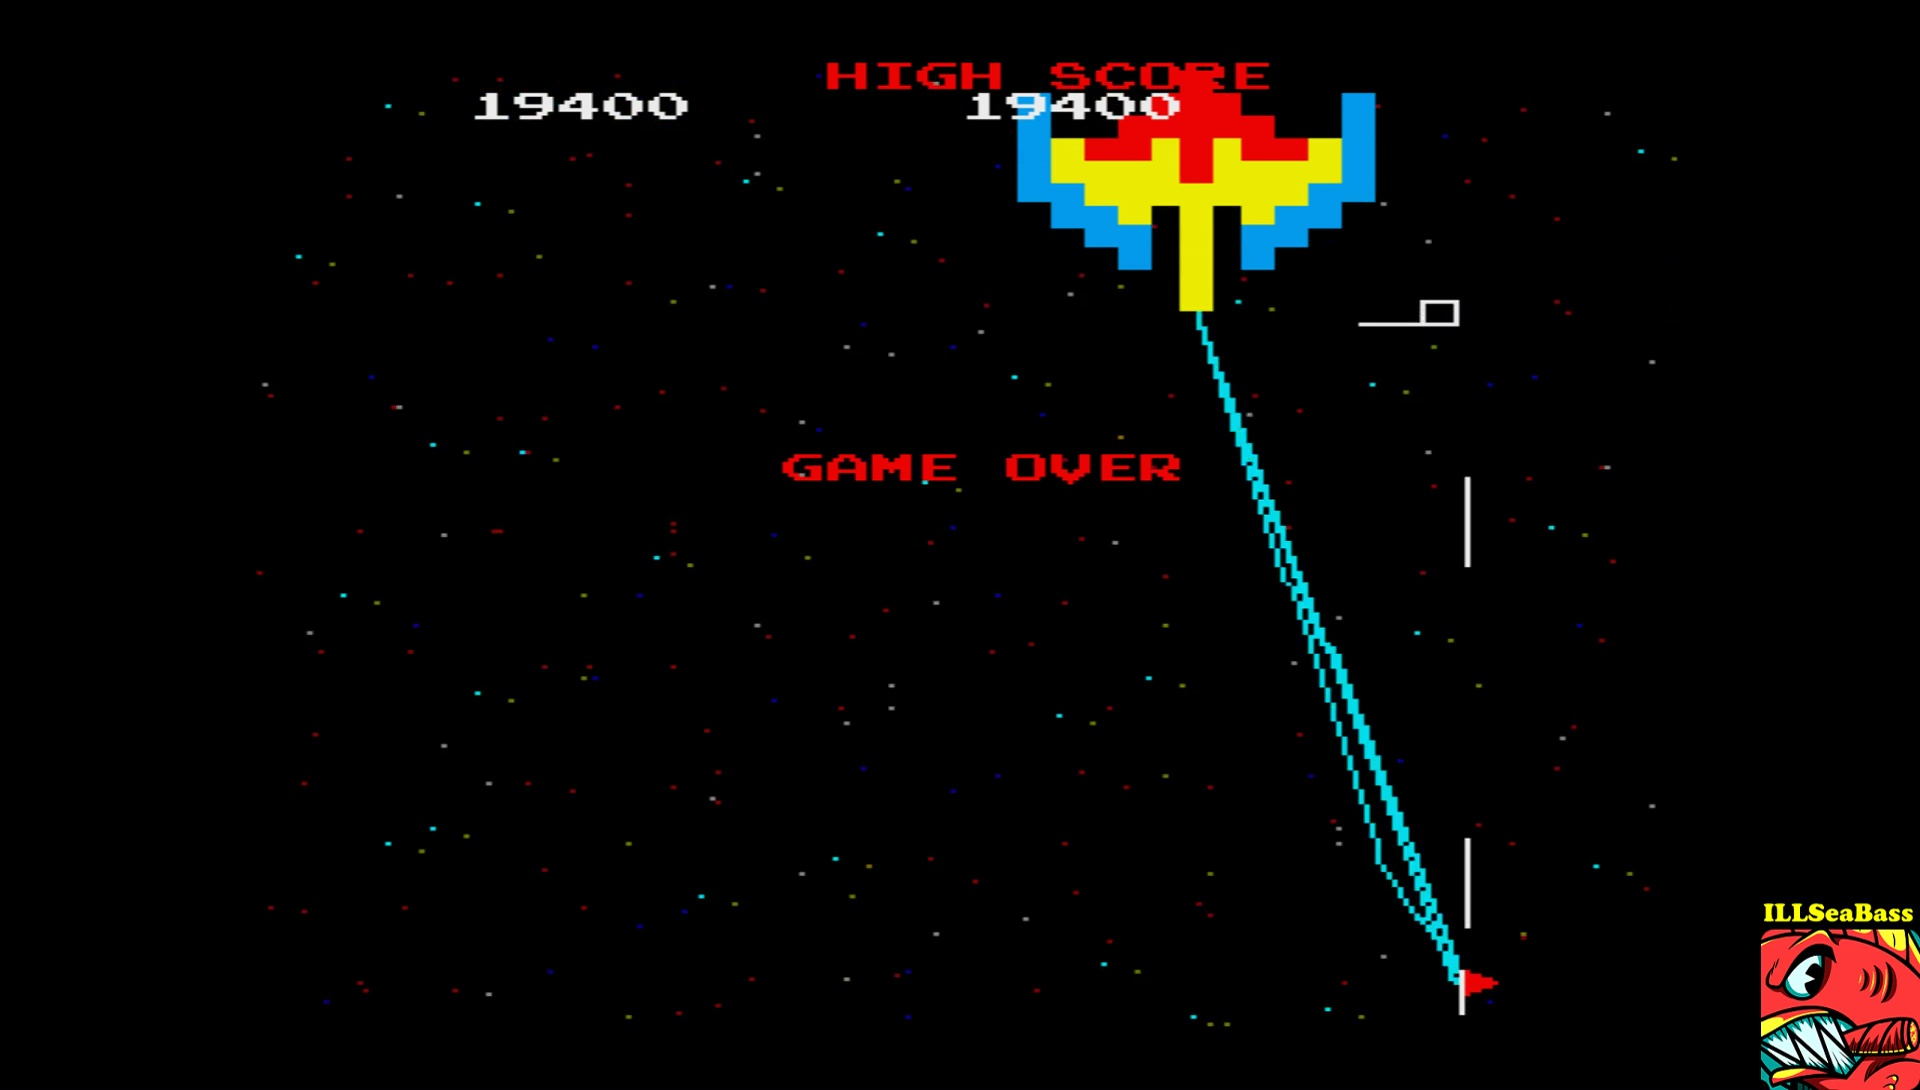 ILLSeaBass: Galaxian 2 (Sharp X68000 Emulated) 19,400 points on 2017-03-14 22:06:09